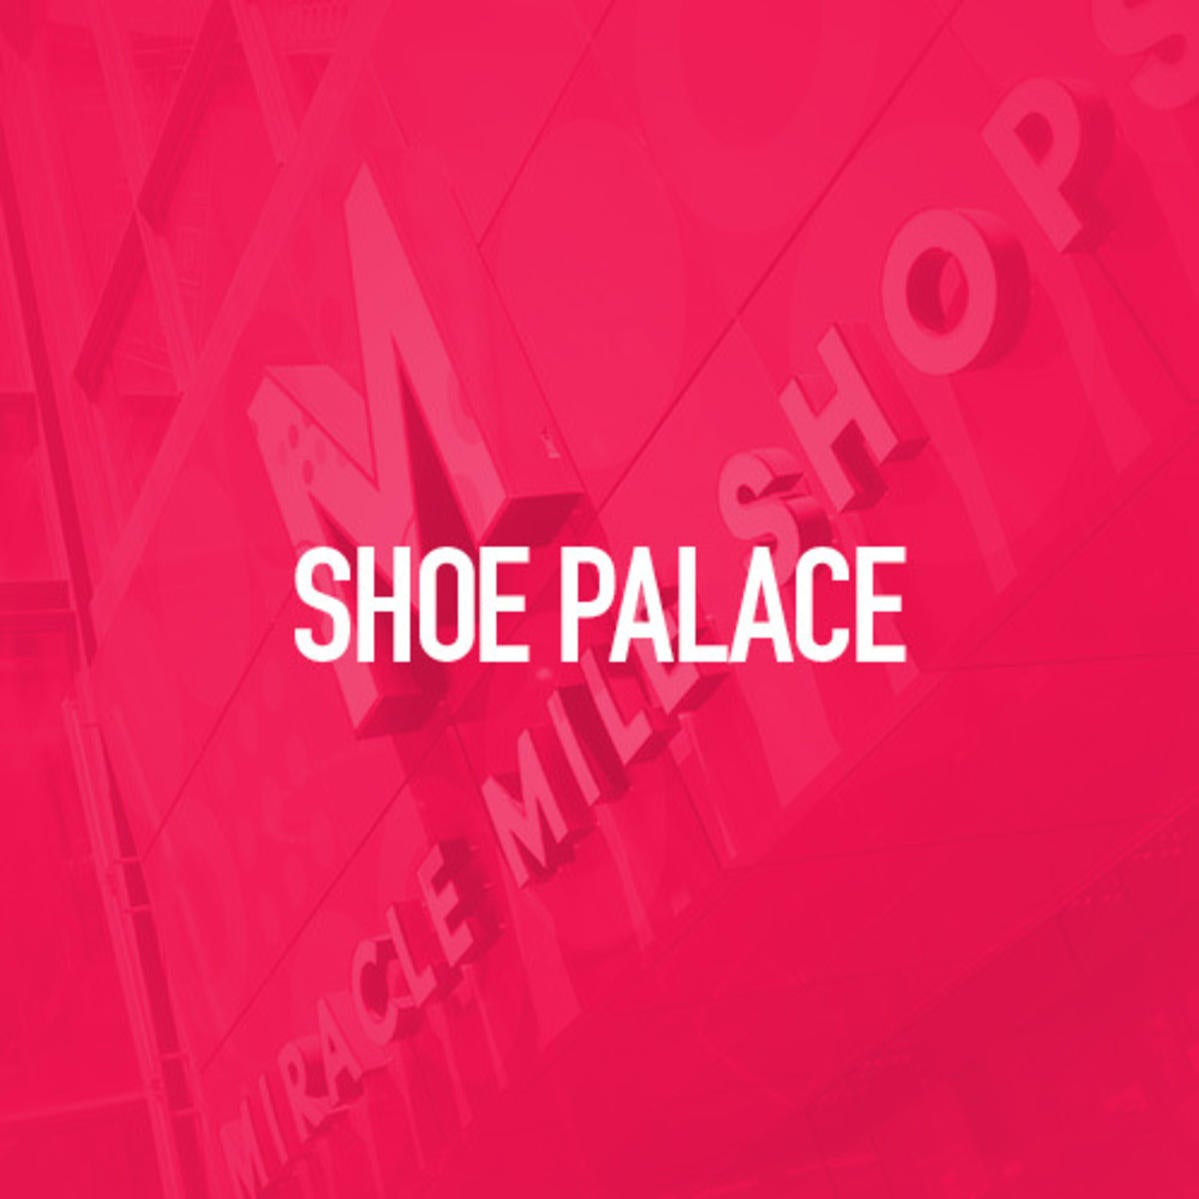 Shoe Palace Return Policy In Store